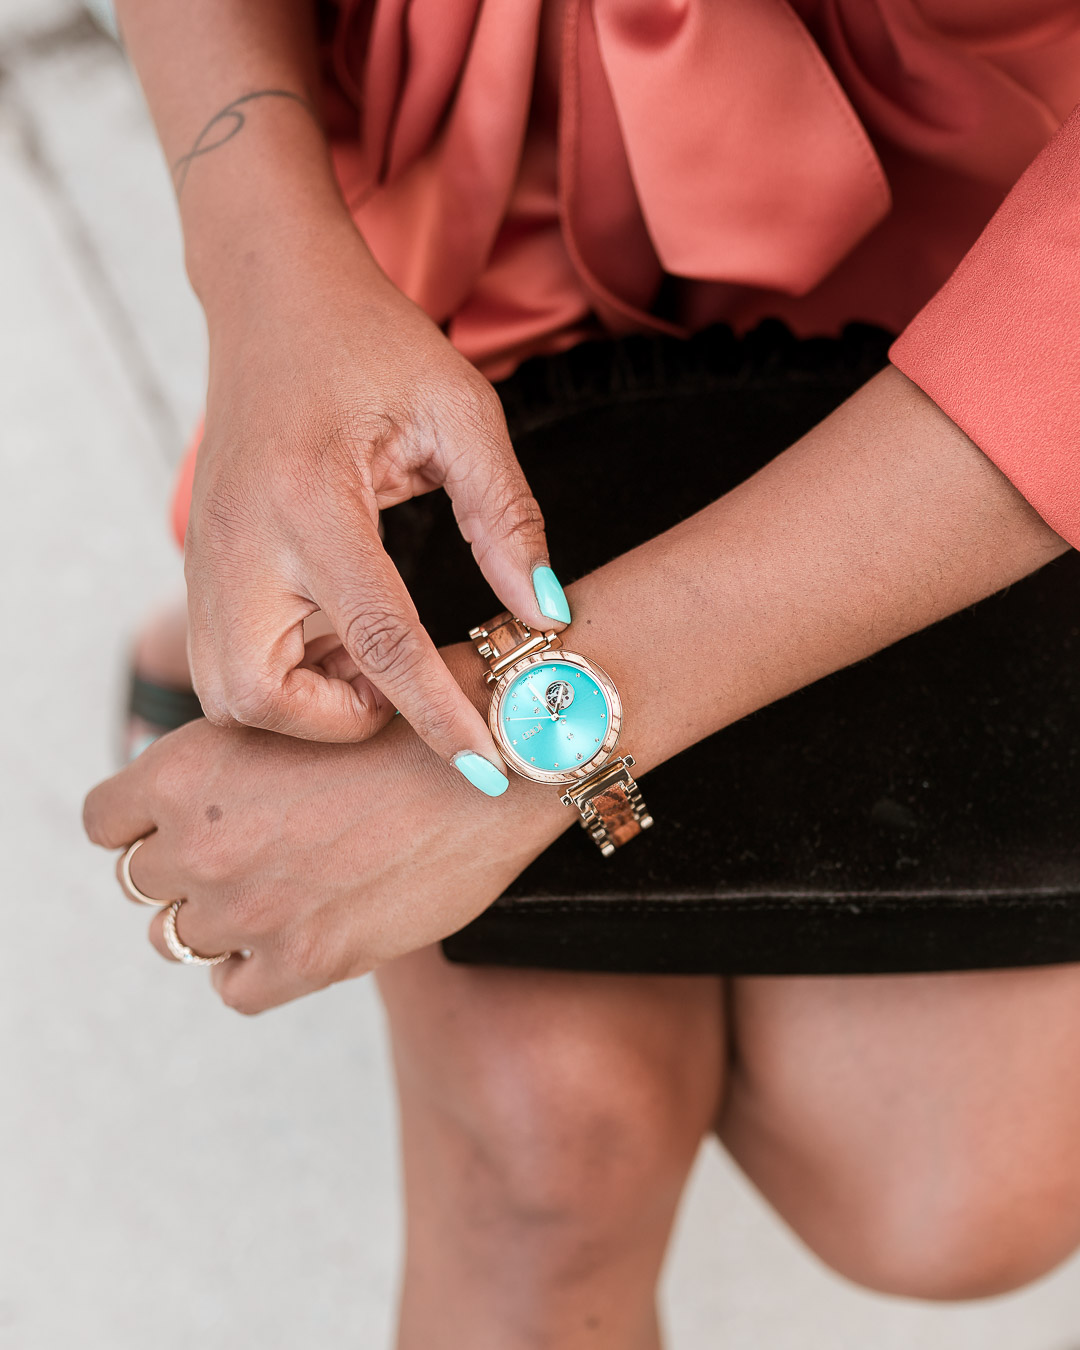 Style Stamped and JORD watch